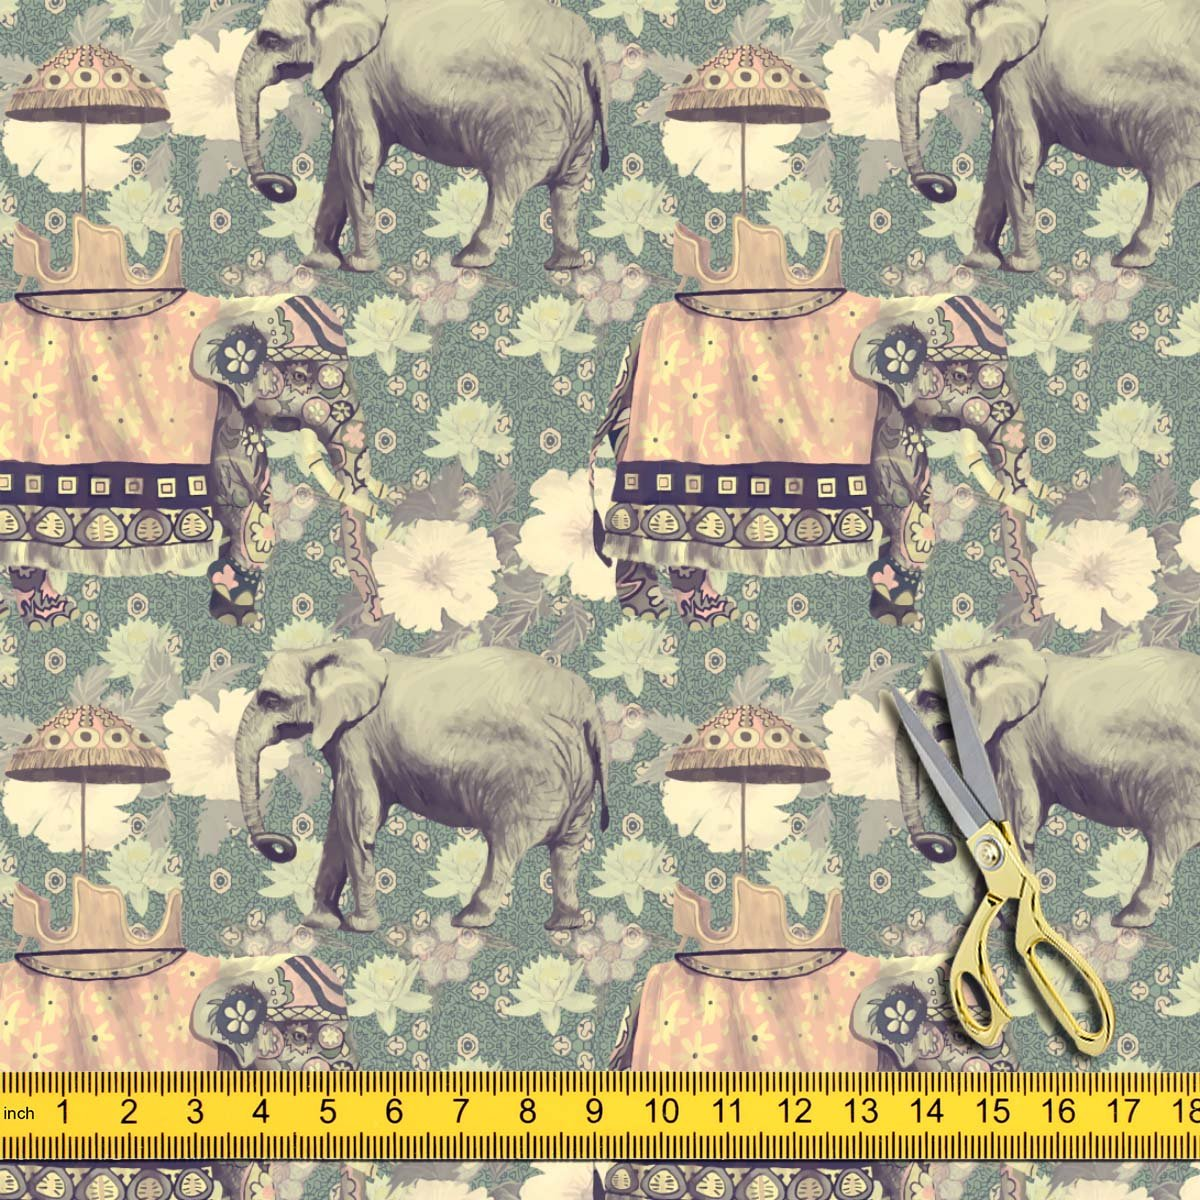 0c39bcdc97 Artzfolio Indian Elephants D6 Canvas Fabric Dress Material & Upholstery  1.3Metre X 4Metre;Canvas: Amazon.in: Home & Kitchen